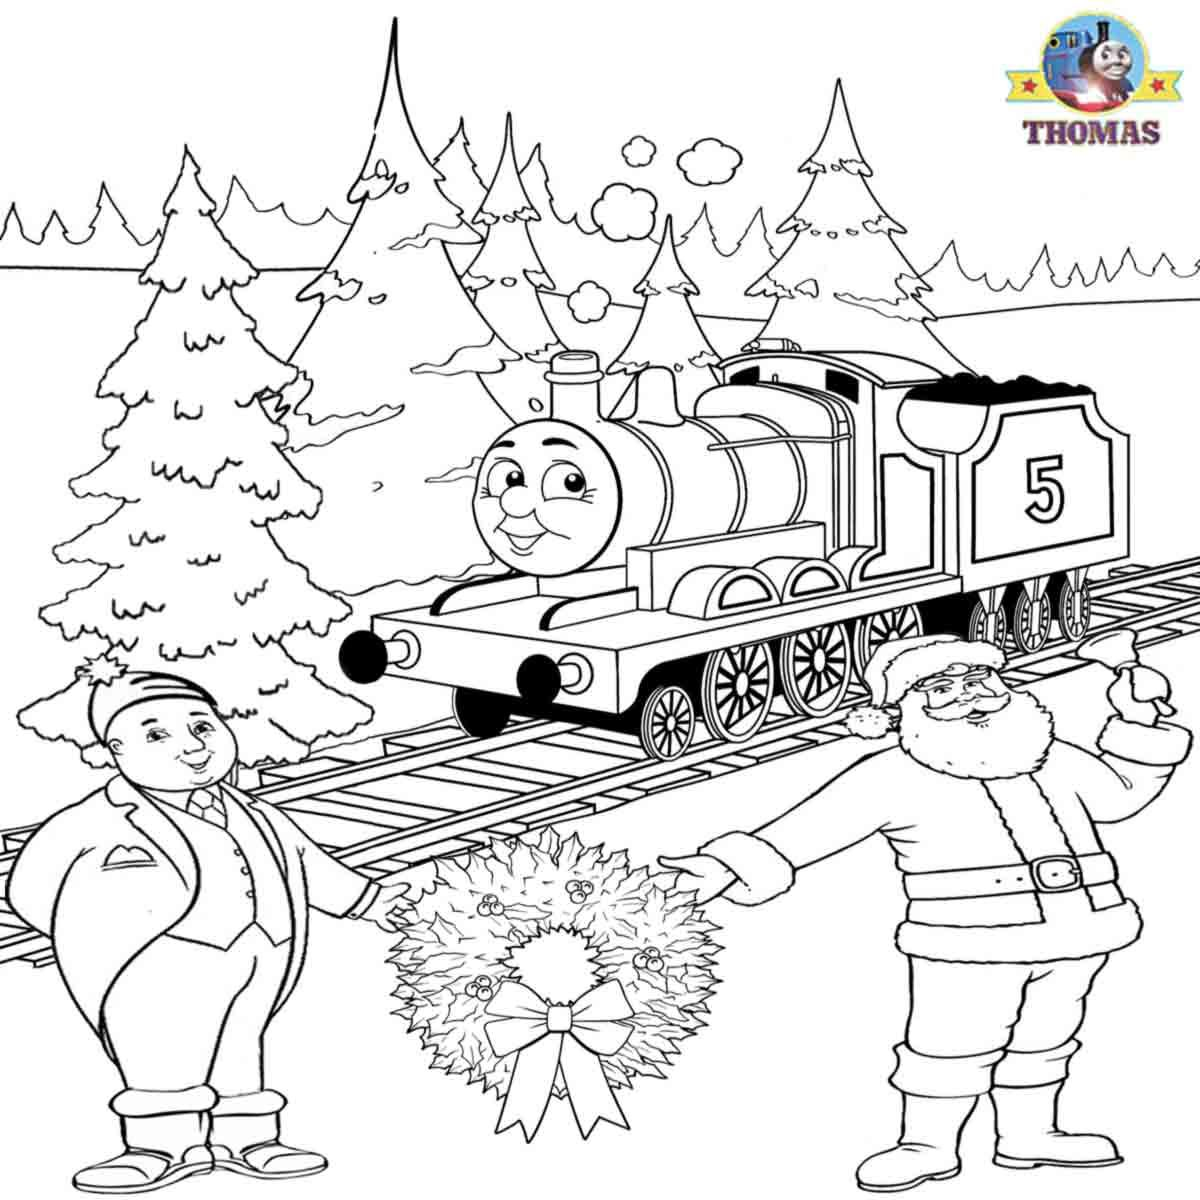 We Let It Snow Kid Free Worksheets James Train Santa Claus Awesome Coloring P Train Coloring Pages Christmas Coloring Sheets Printable Christmas Coloring Pages